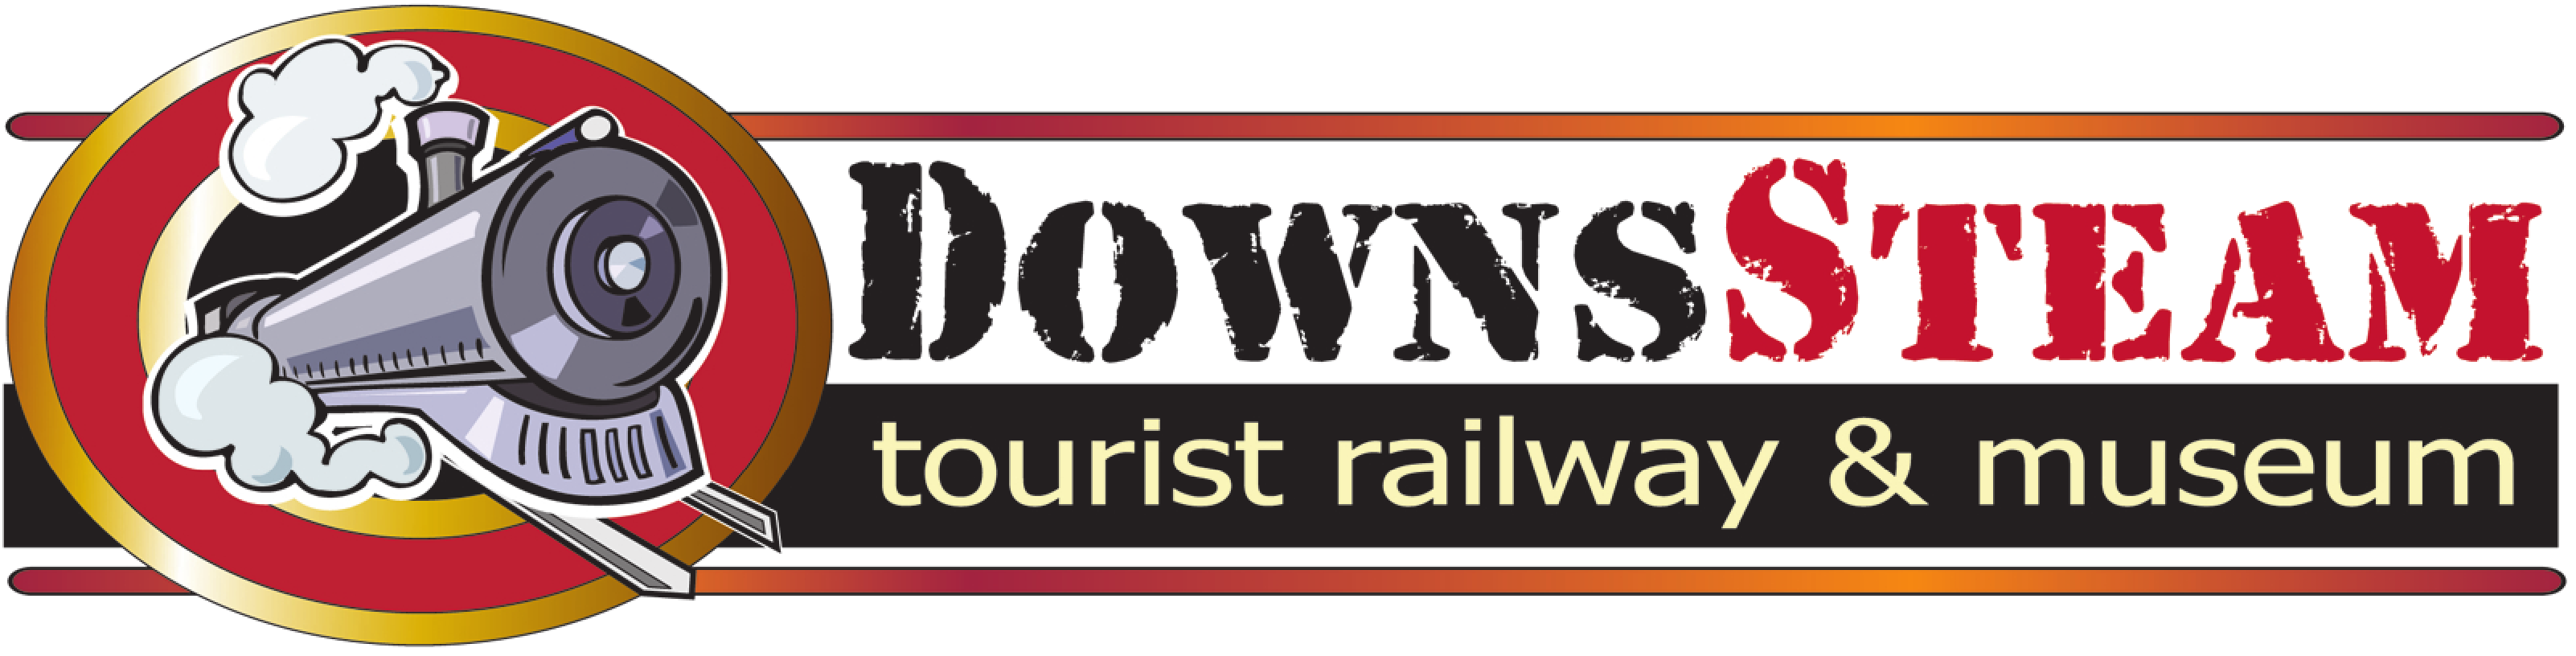 DownsSteam Tourist Railway and Museum